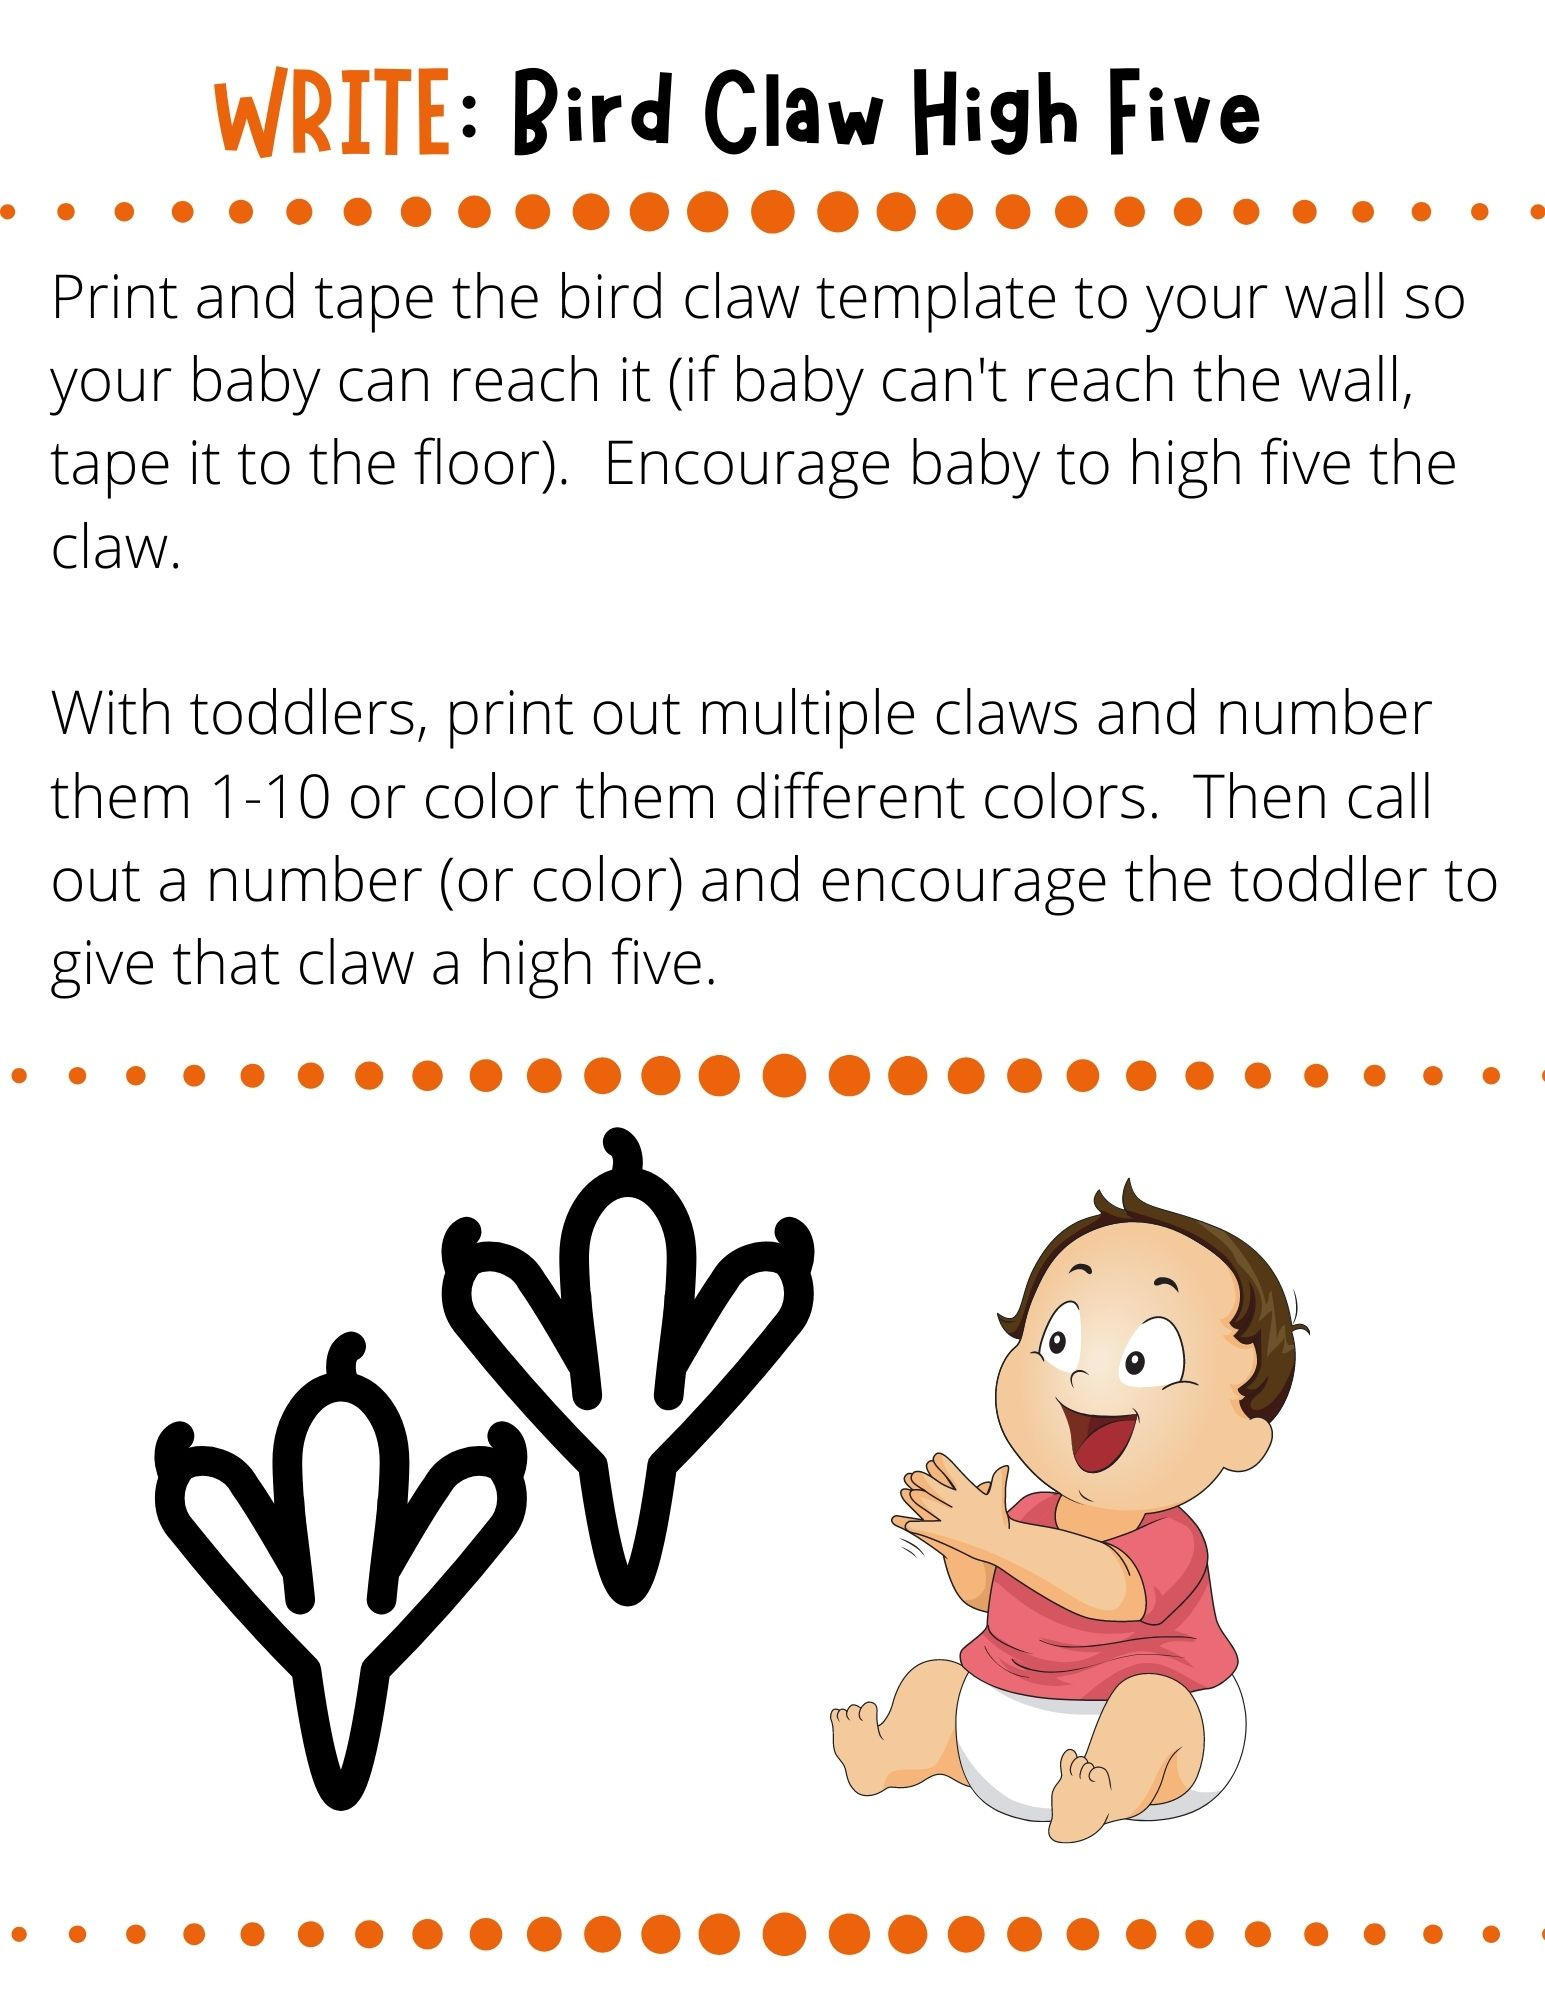 Print and tape the bird claw template to your wall so your baby can reach it (if baby can't reach the wall, tape it to the floor).  Encourage baby to high five the claw.  With toddlers, print out multiple claws and number them 1-10 or color them different colors.  Then call out a number (or color) and encourage the toddler to give that claw a high five.